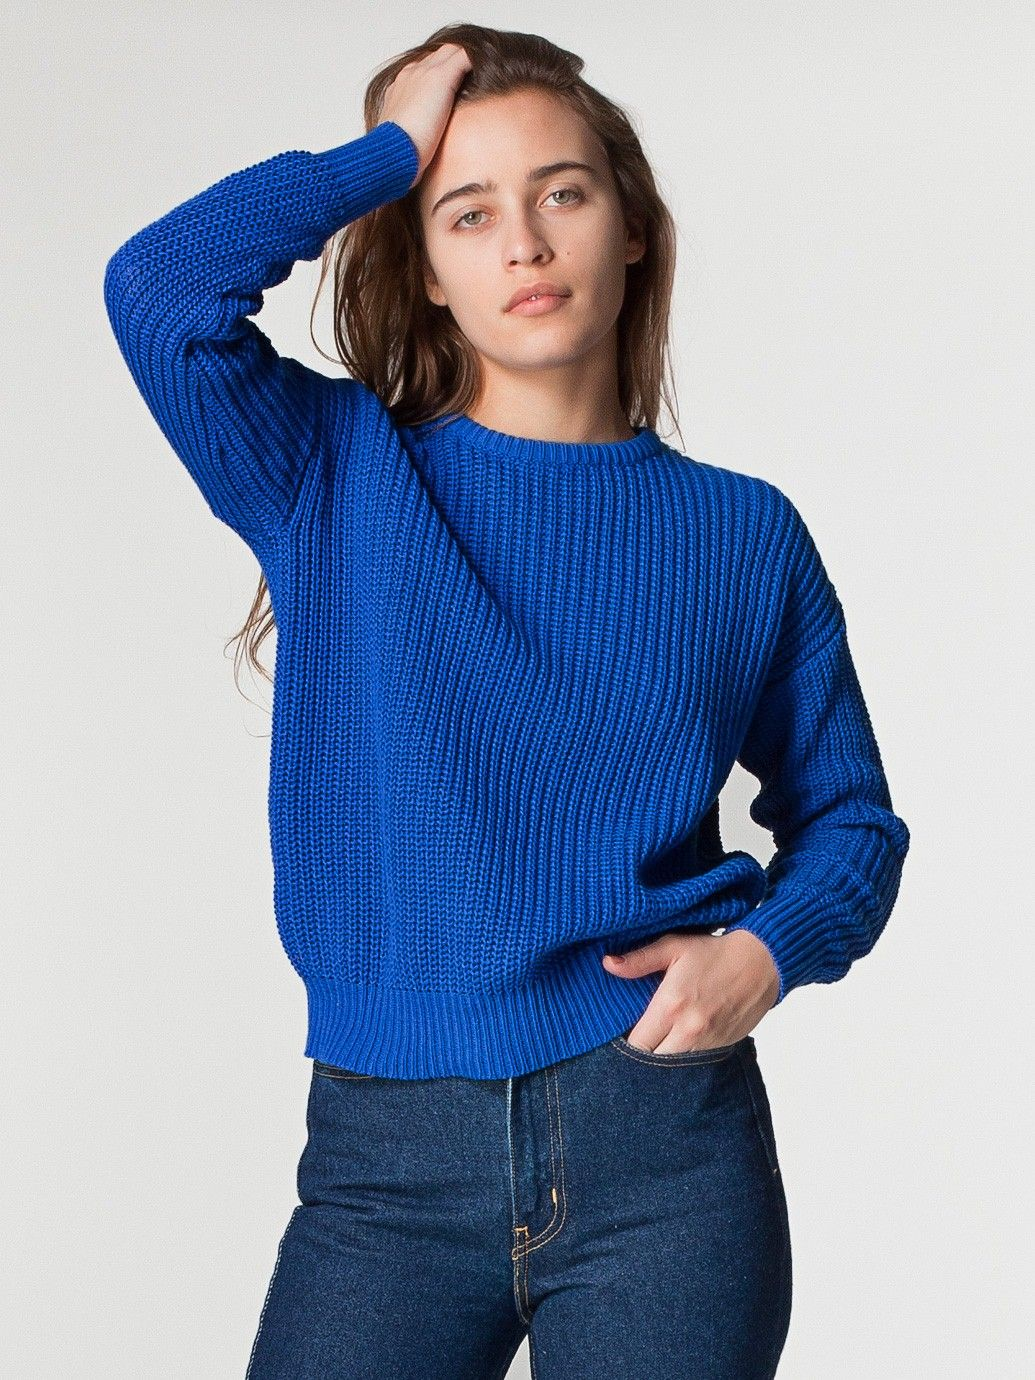 Unisex Fisherman's Pullover | Pullovers | Women's Sweaters ...